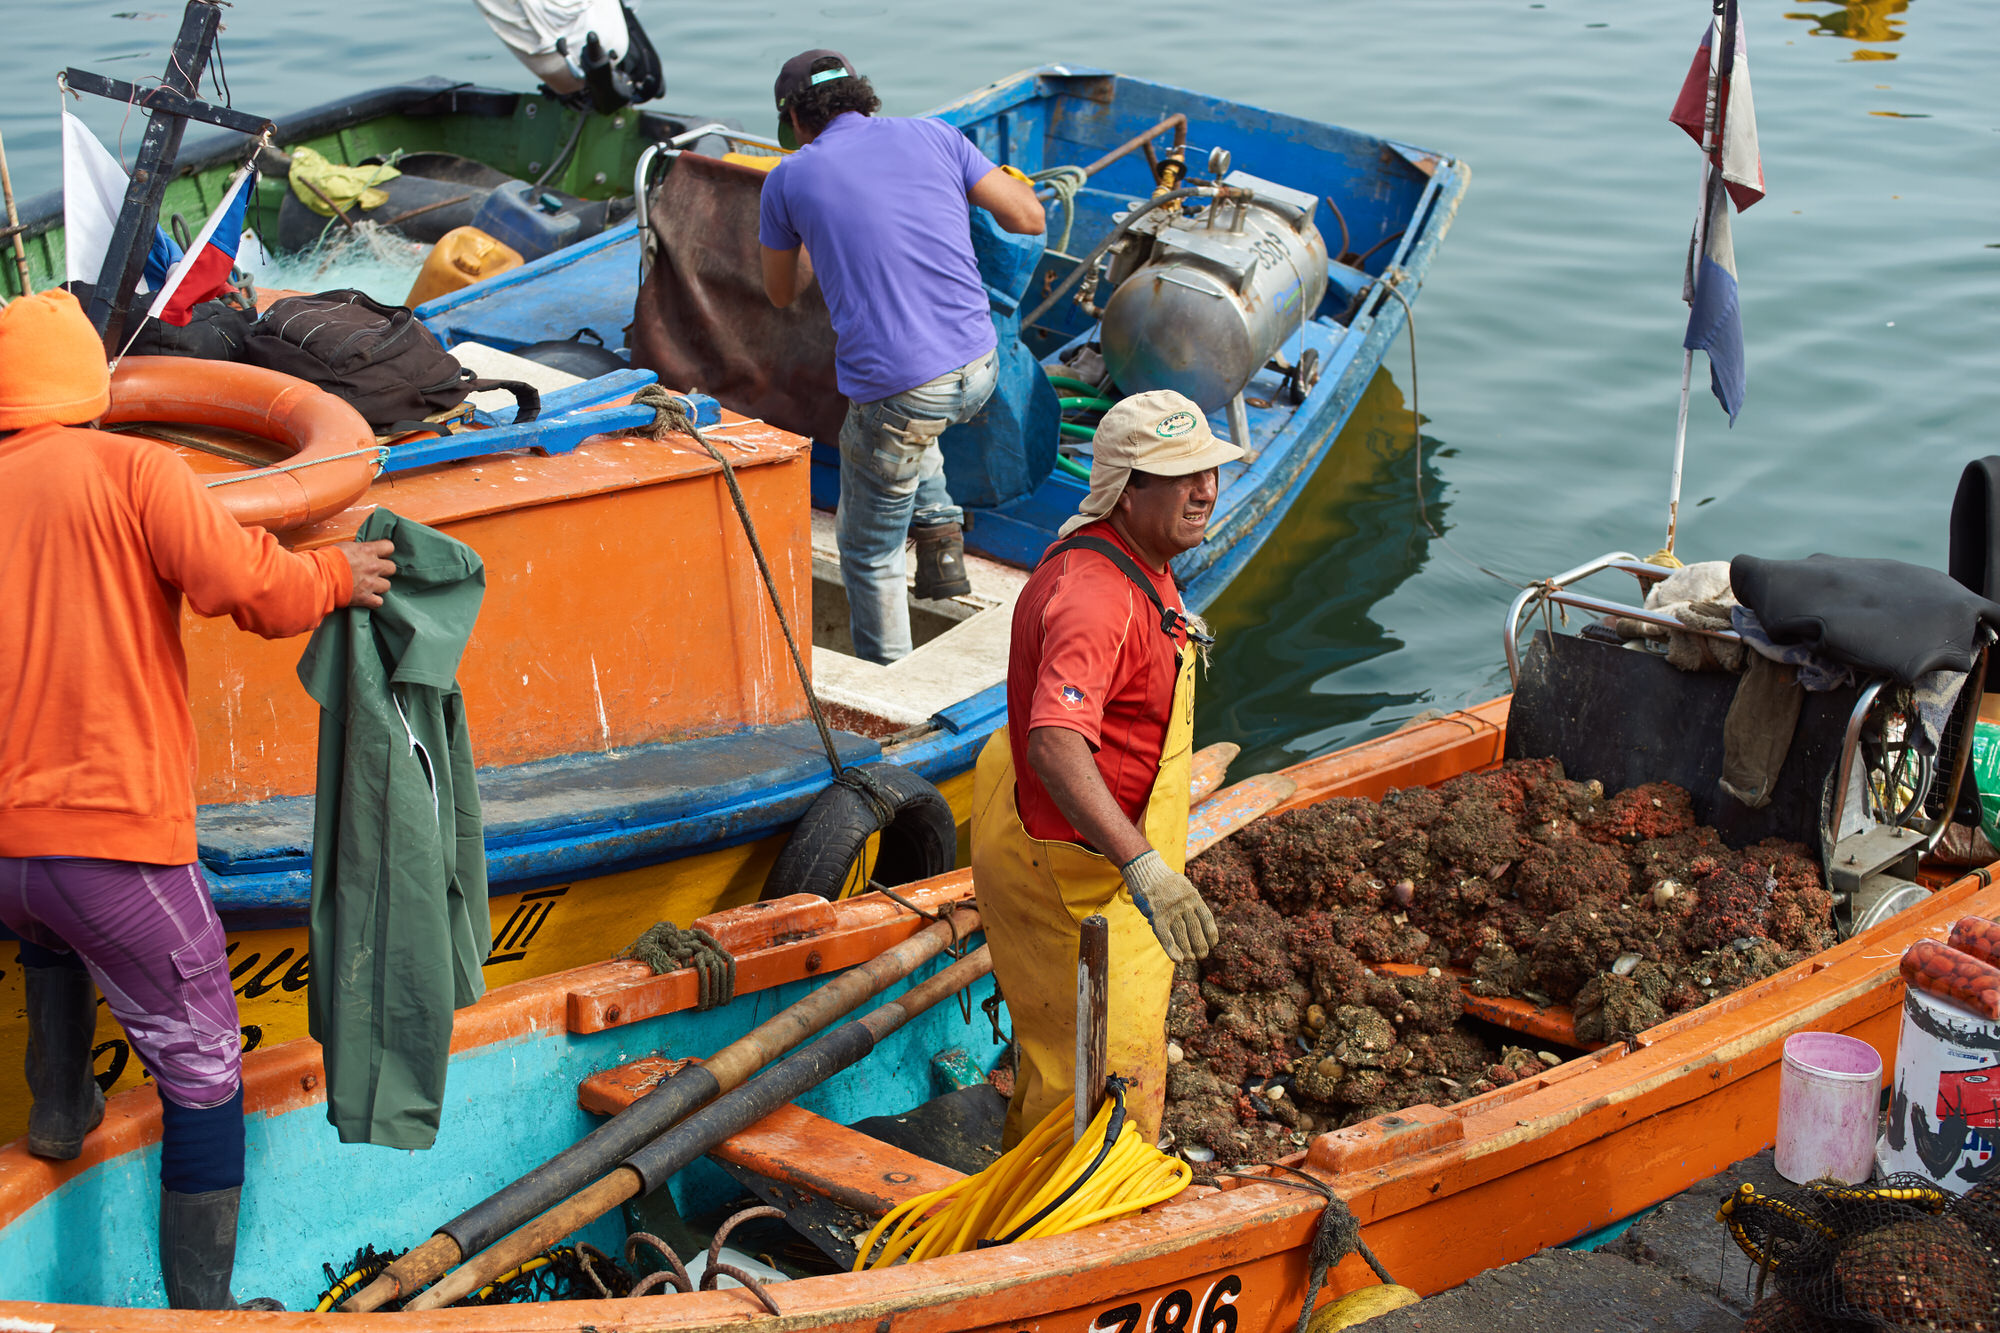 Local Filipino along the Tañon Strait collect shellfish and other marine life to supplement their diets and incomes